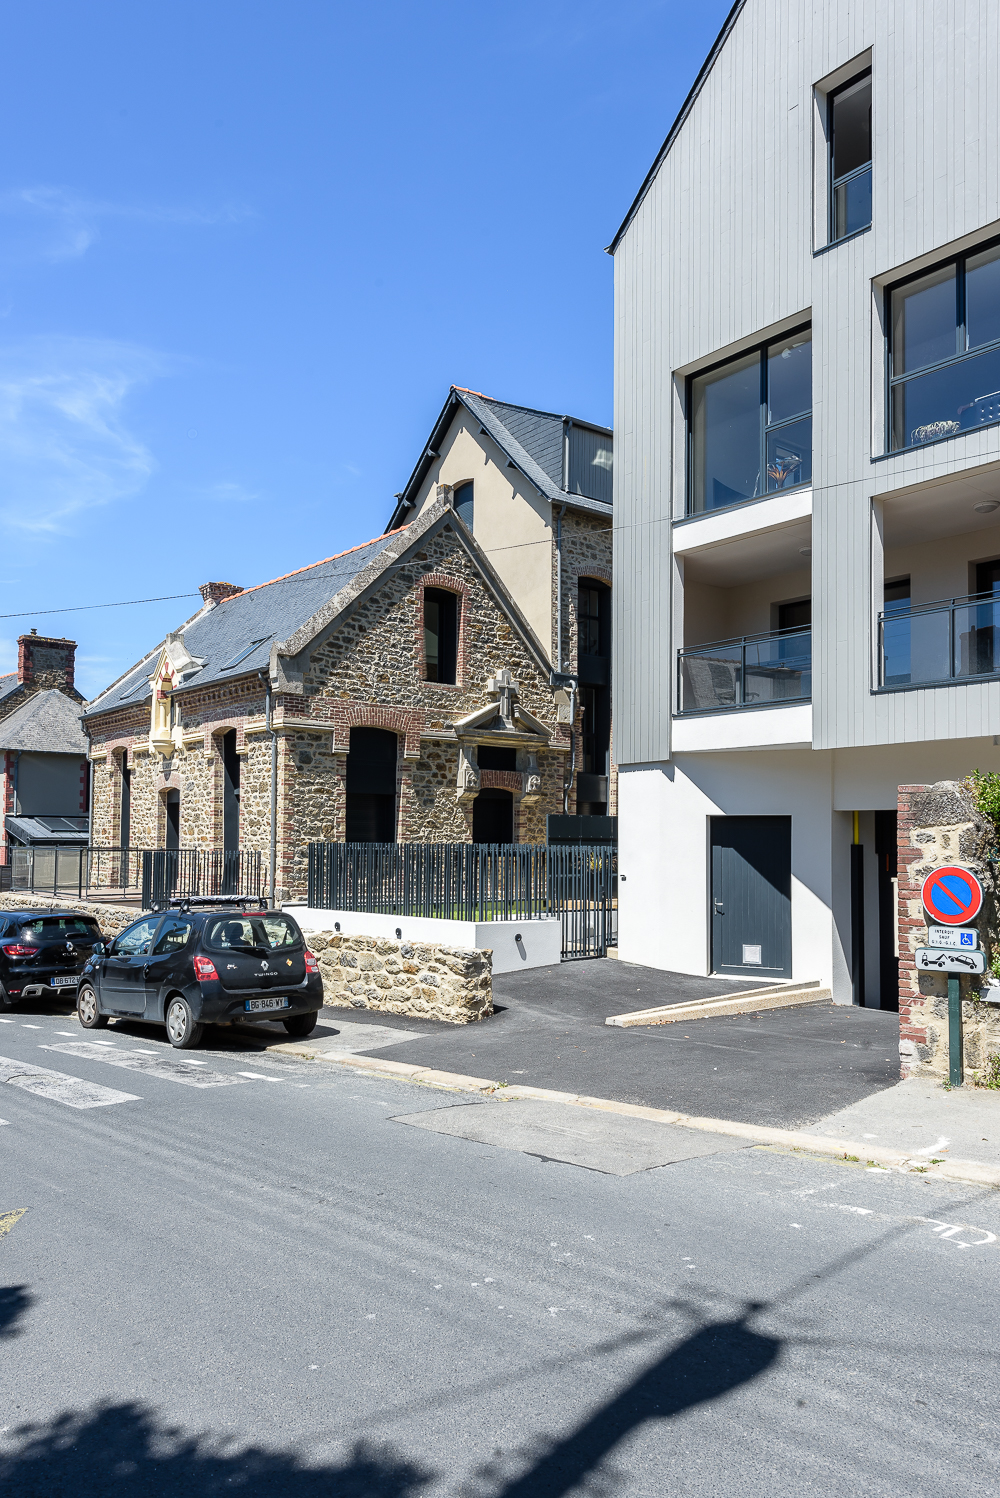 photographe d'architecture ©INTERVALphoto : Bachmann associés architectes, groupe Authenticity, logements collectifs, St Malo (35)